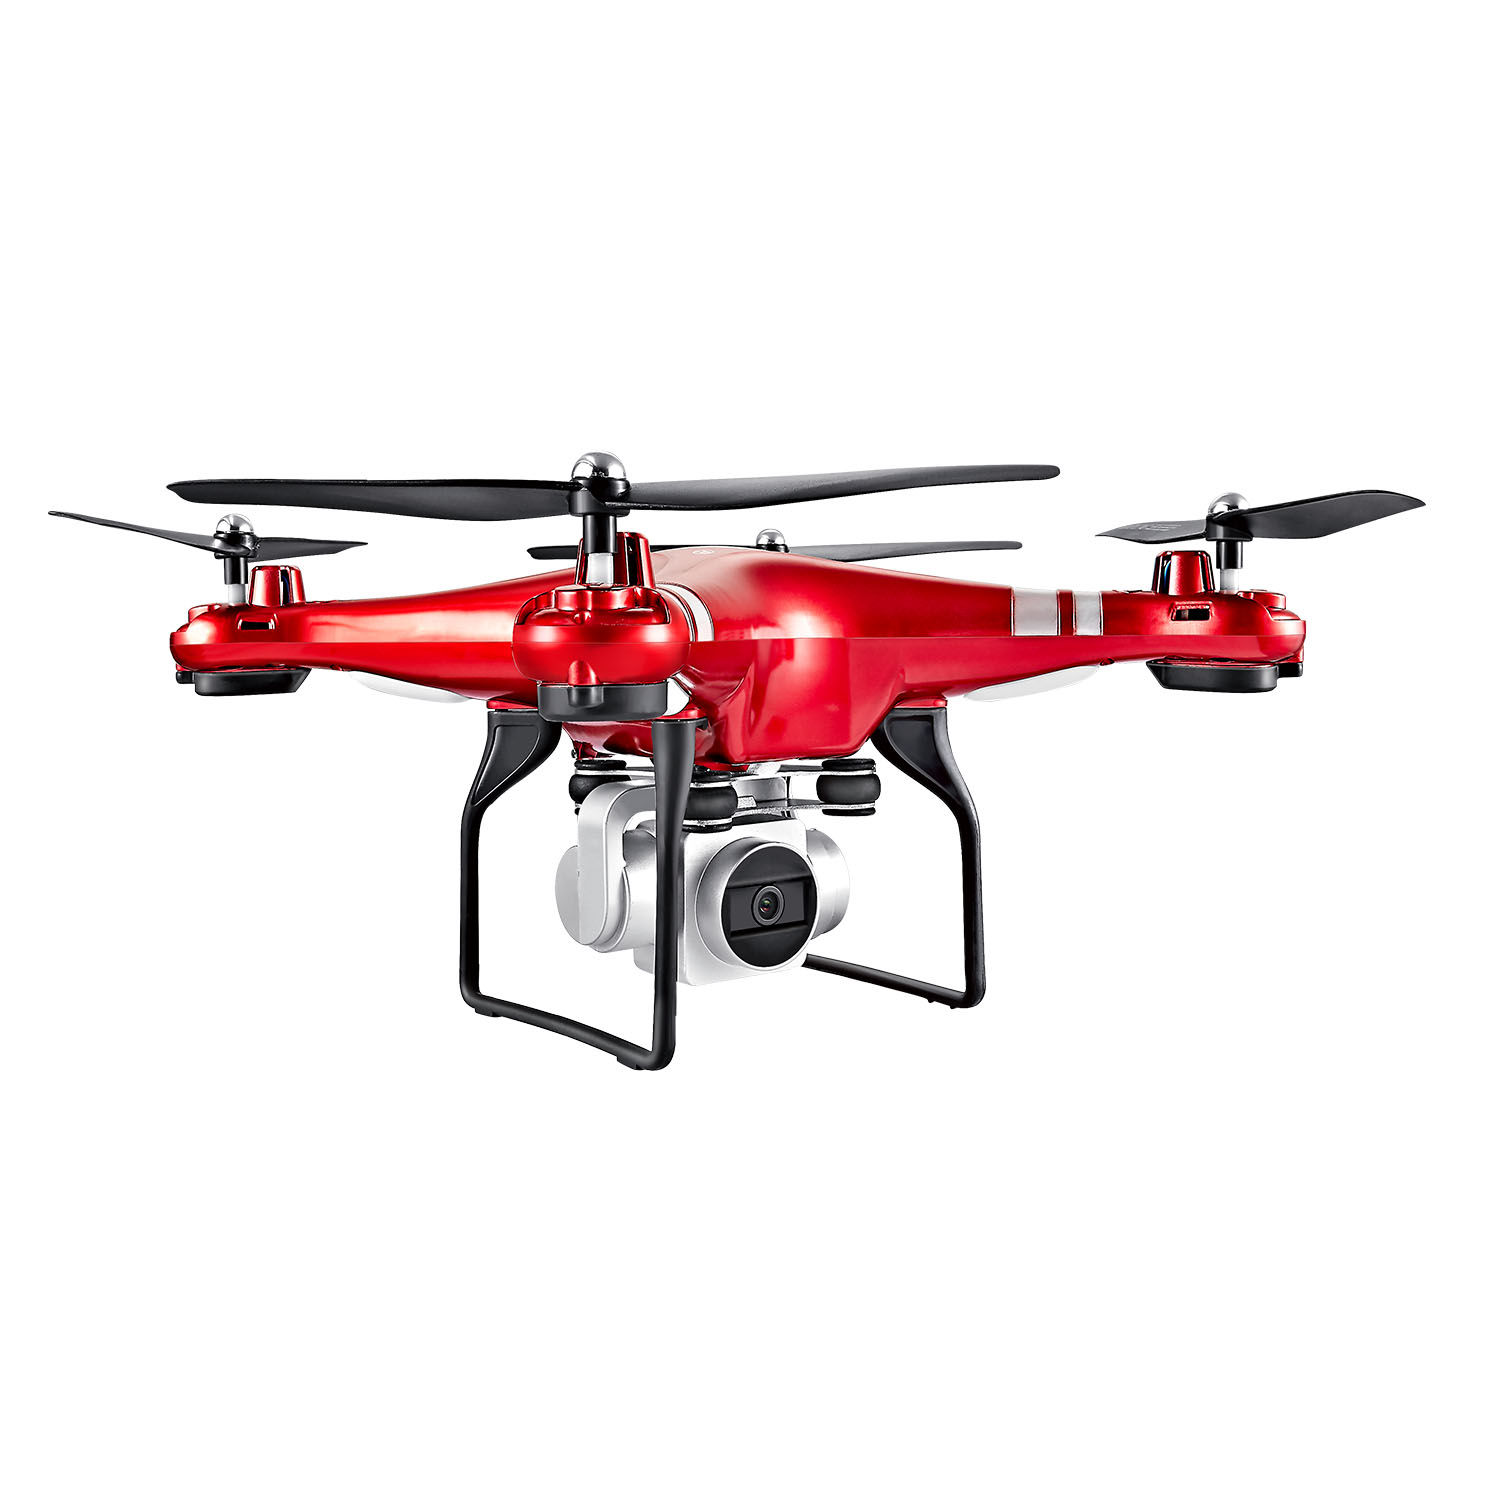 FULAIYING TOYS X52 drone FPV WIFI 2MP HD camera RC Quadcopter Micro-Remote control Helicopter RC drone kit helicopter racer ai rc drone fpv wifi 2mp hd camera x52hd rc quadcopter micro remote control helicopter uav drones kit helicopter racer aircraft toy